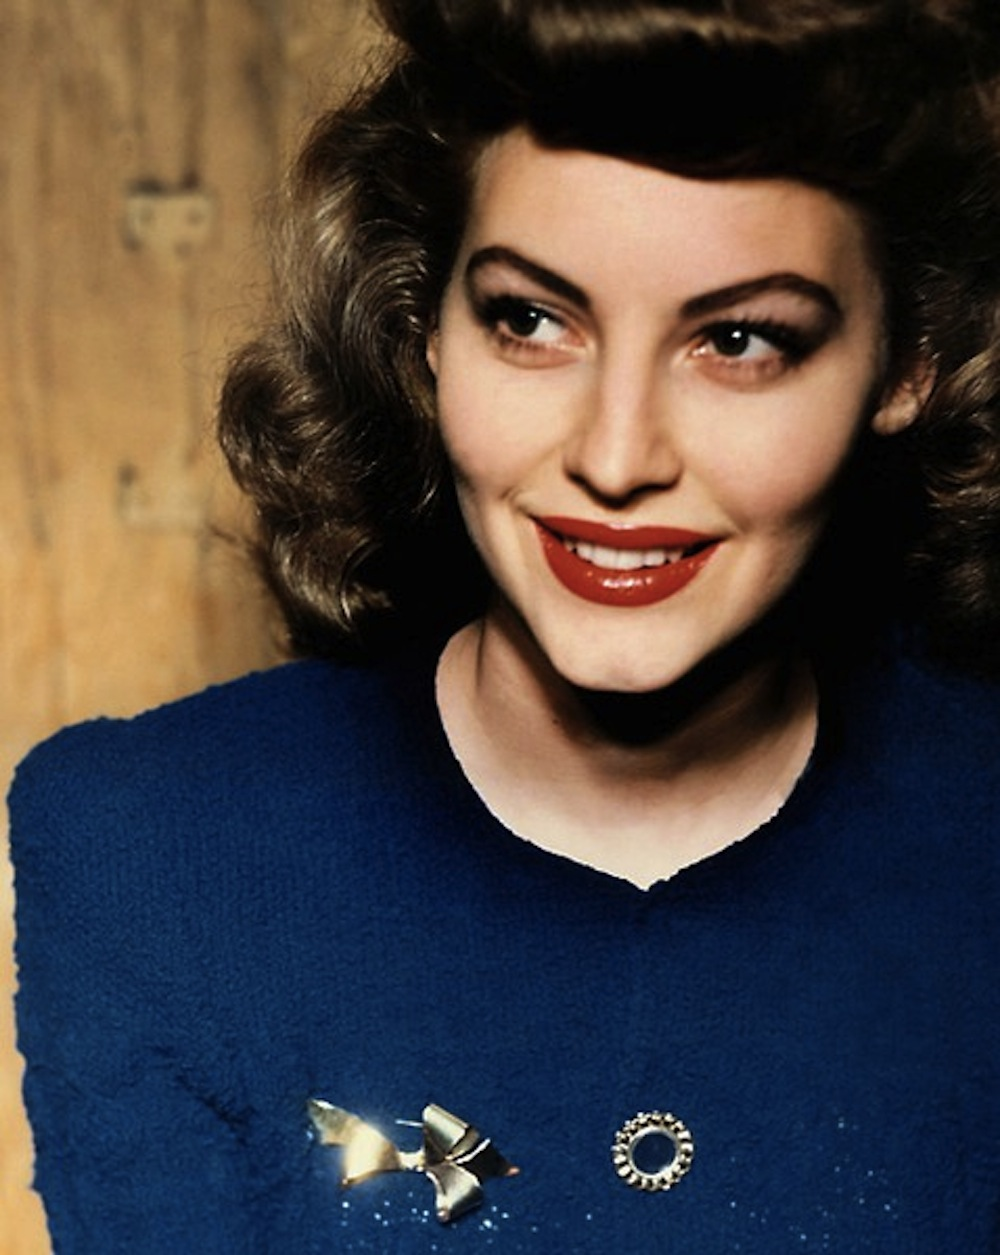 Red Lipstick, Ava Gardner and my pursuit